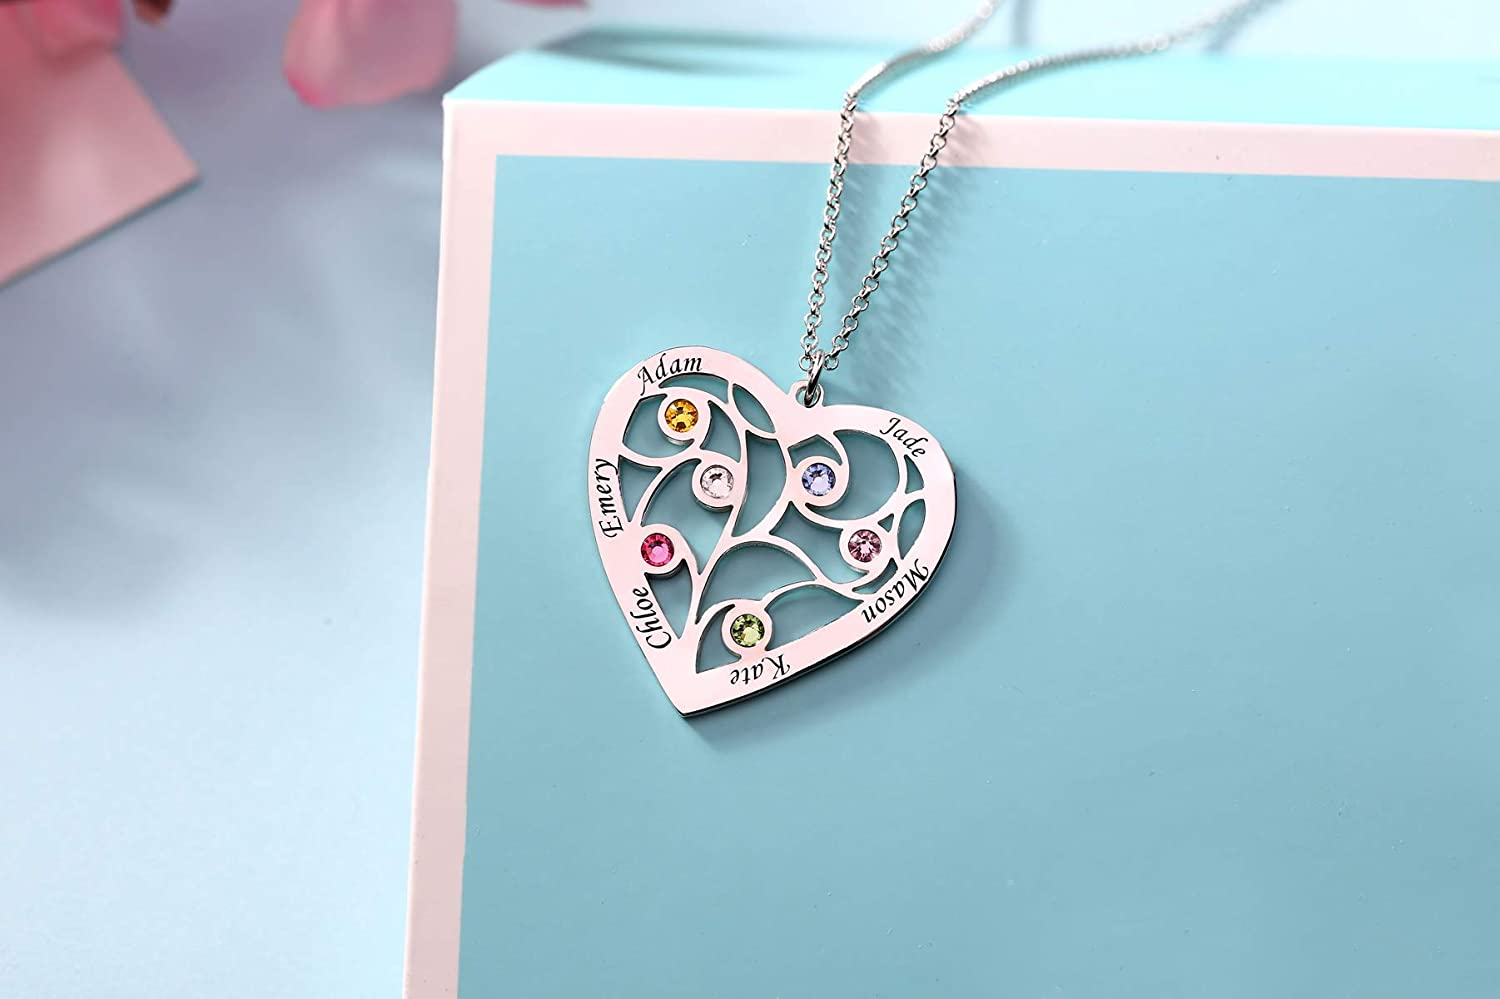 Getname Necklace Heart Famliy Tree of Life Name Necklace Engraved with 6 Names/& 6 Birthstones for Mother